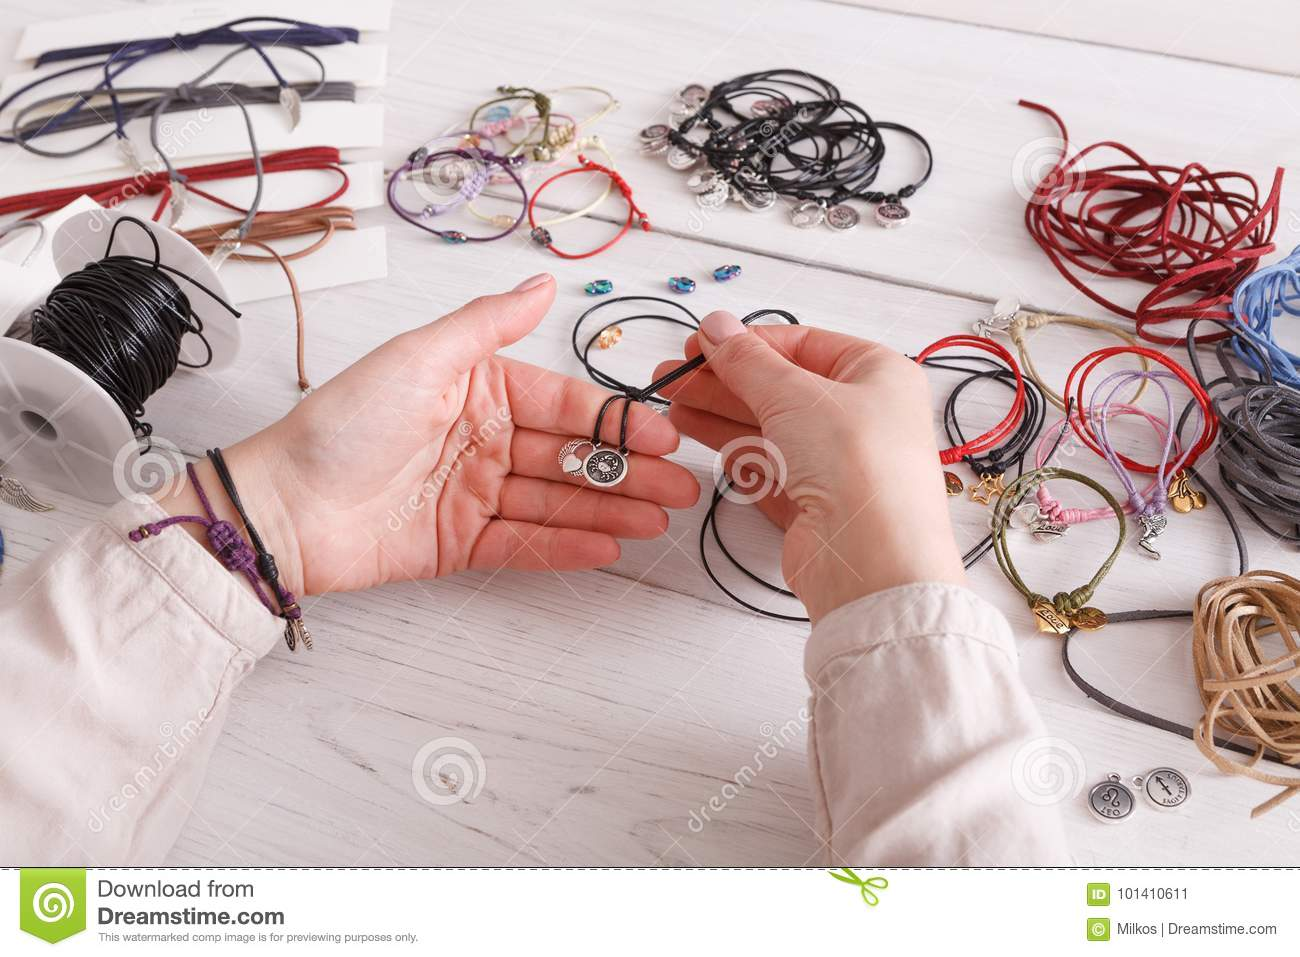 Handmade Jewelry Making Female Hobby Stock Image Of Artisan Wiring Diagram Woman Creating Bracelet At Home Workshop Pov Fashion Handicraft Concept